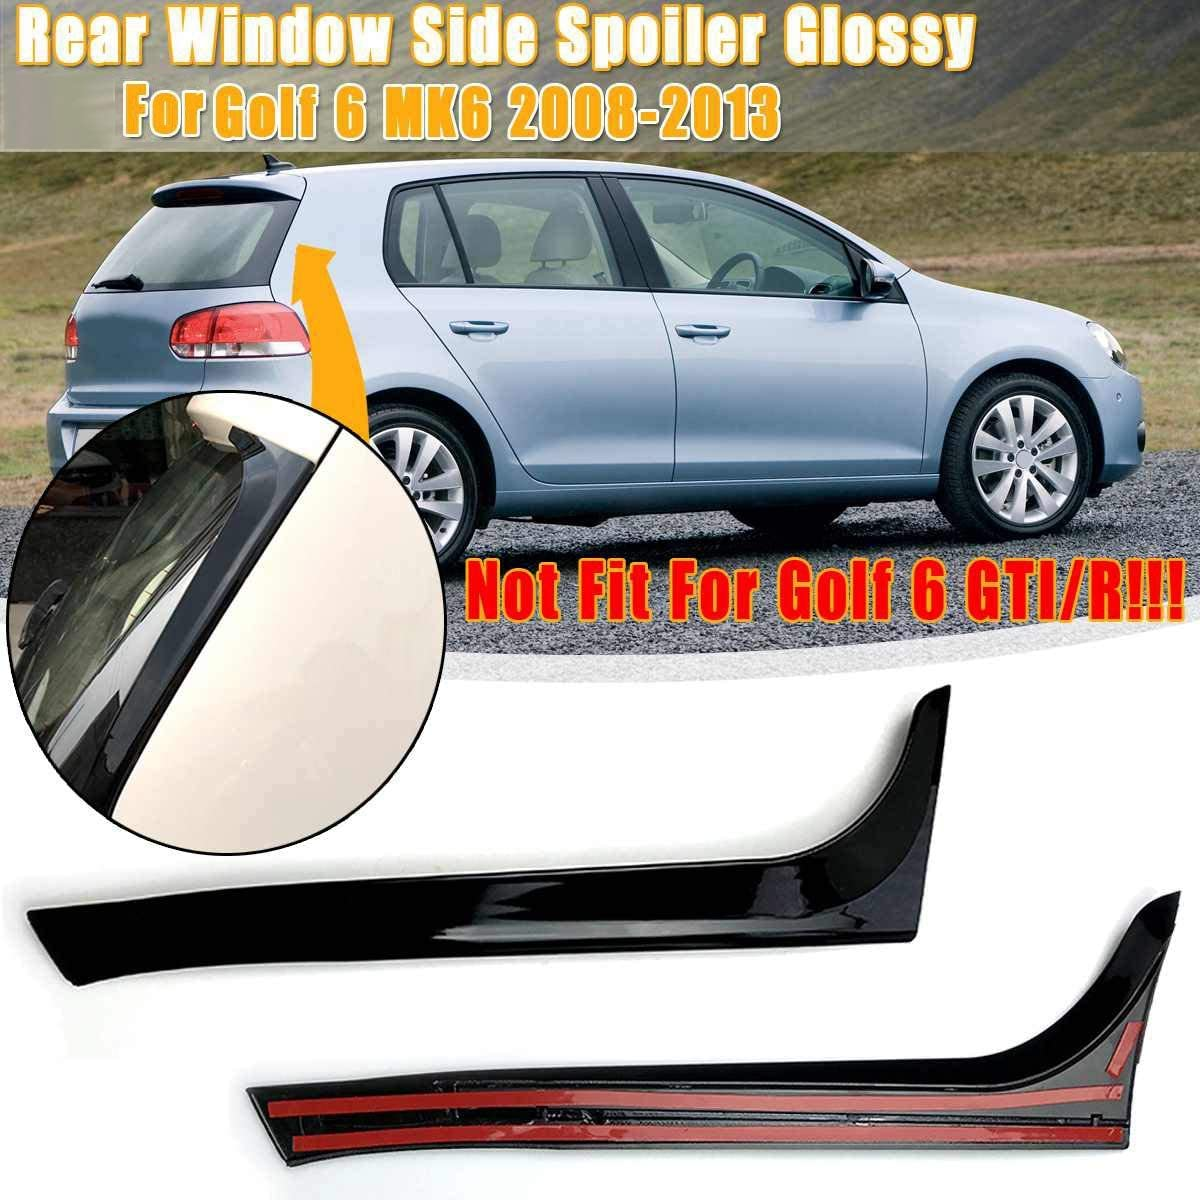 Semoic Gloss Black Rear Side Wing Spoiler Stickers Trim Cover for 6 MK6 2008-2013 Not for 6 //R